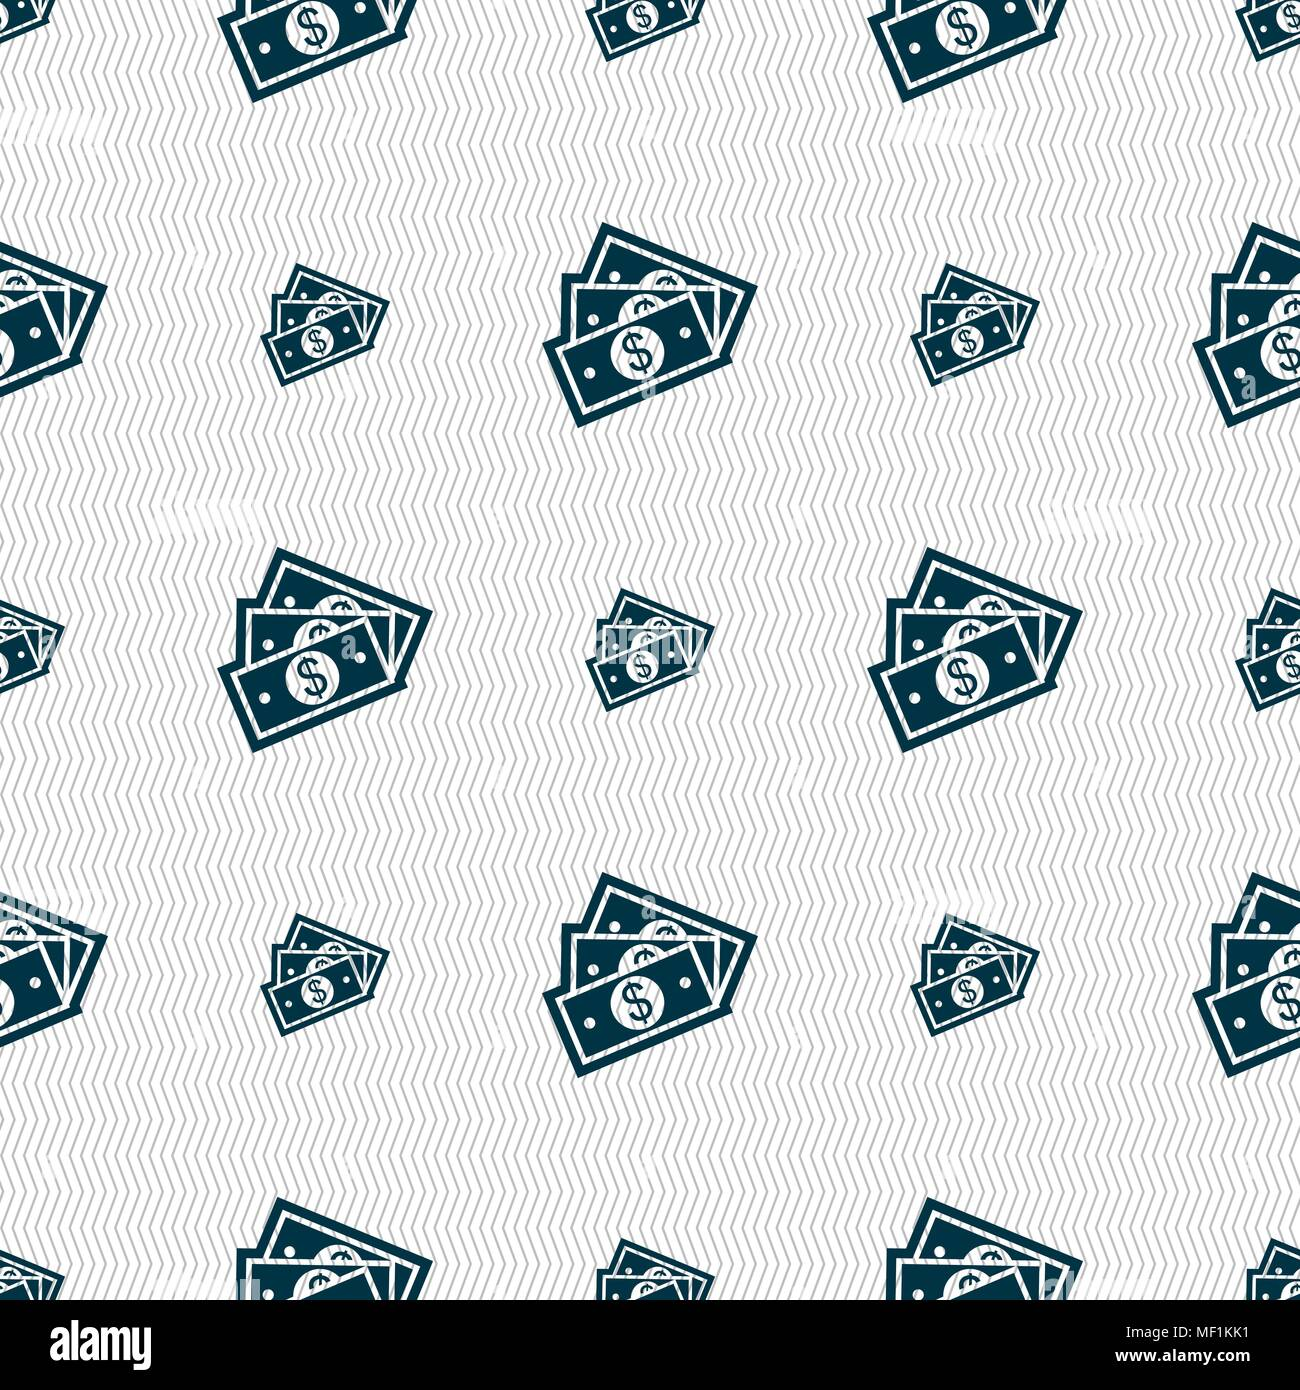 U.s dollar icon sign. Seamless pattern with geometric texture. Vector illustration - Stock Vector